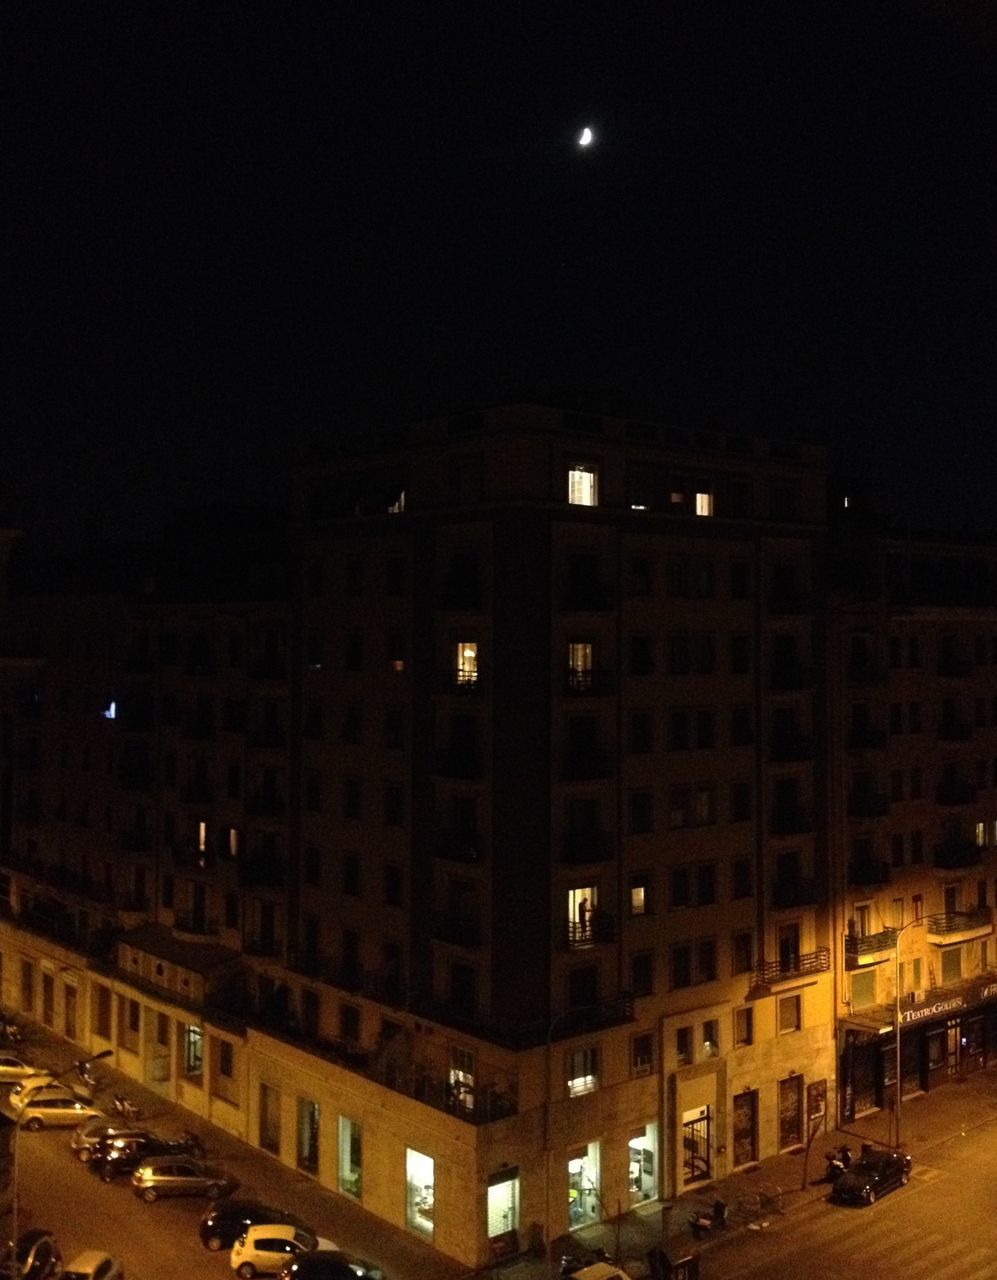 night, city, architecture, illuminated, street, building exterior, moon, built structure, no people, outdoors, cityscape, sky